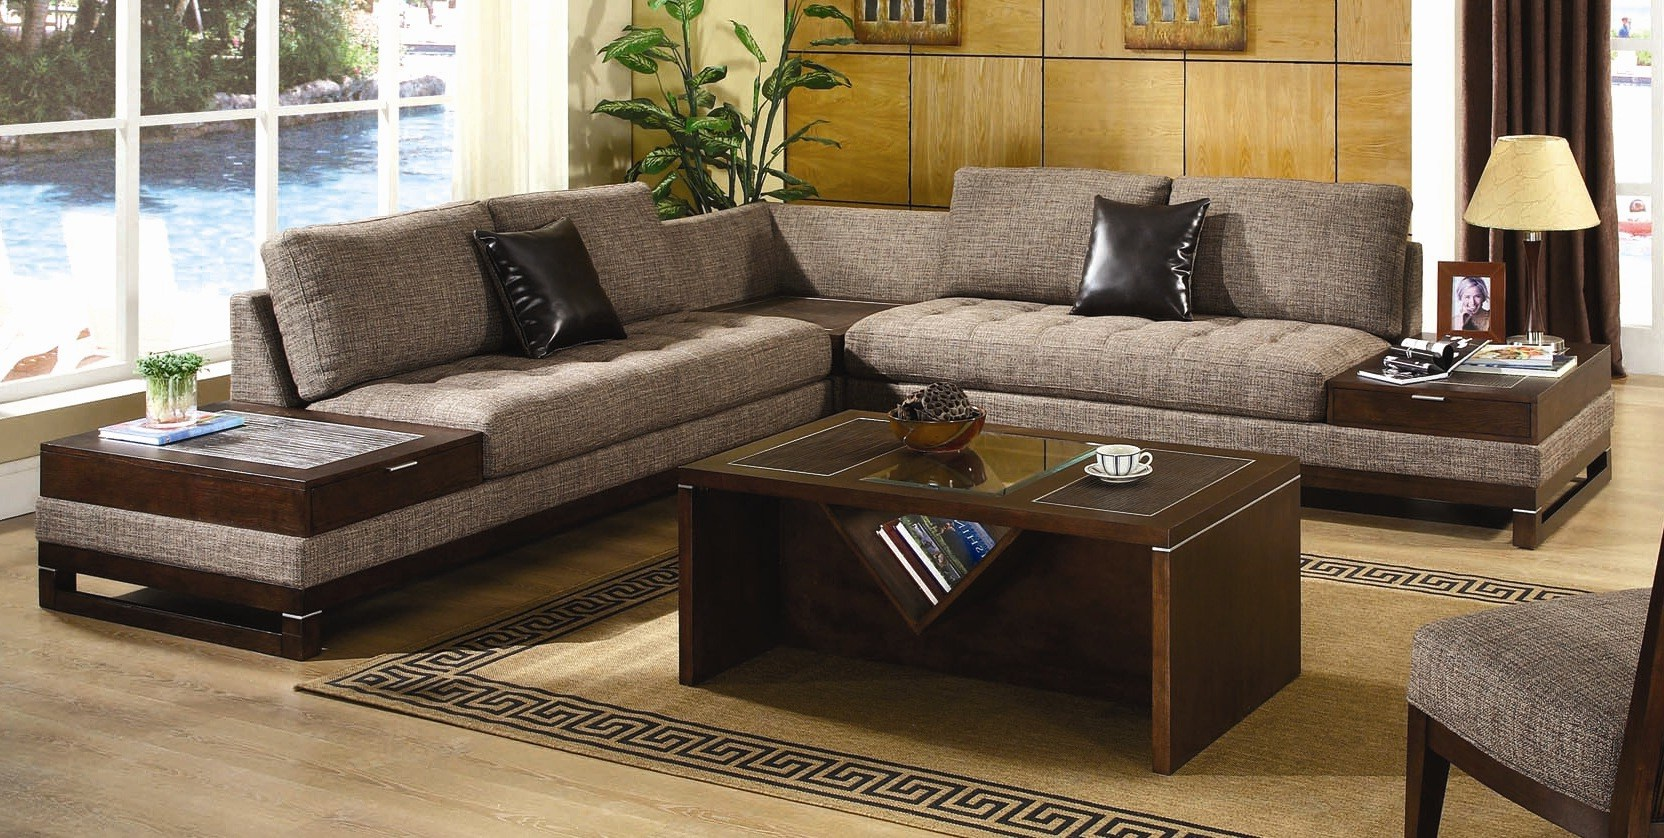 3 Piece Coffee Table Sets Under 200